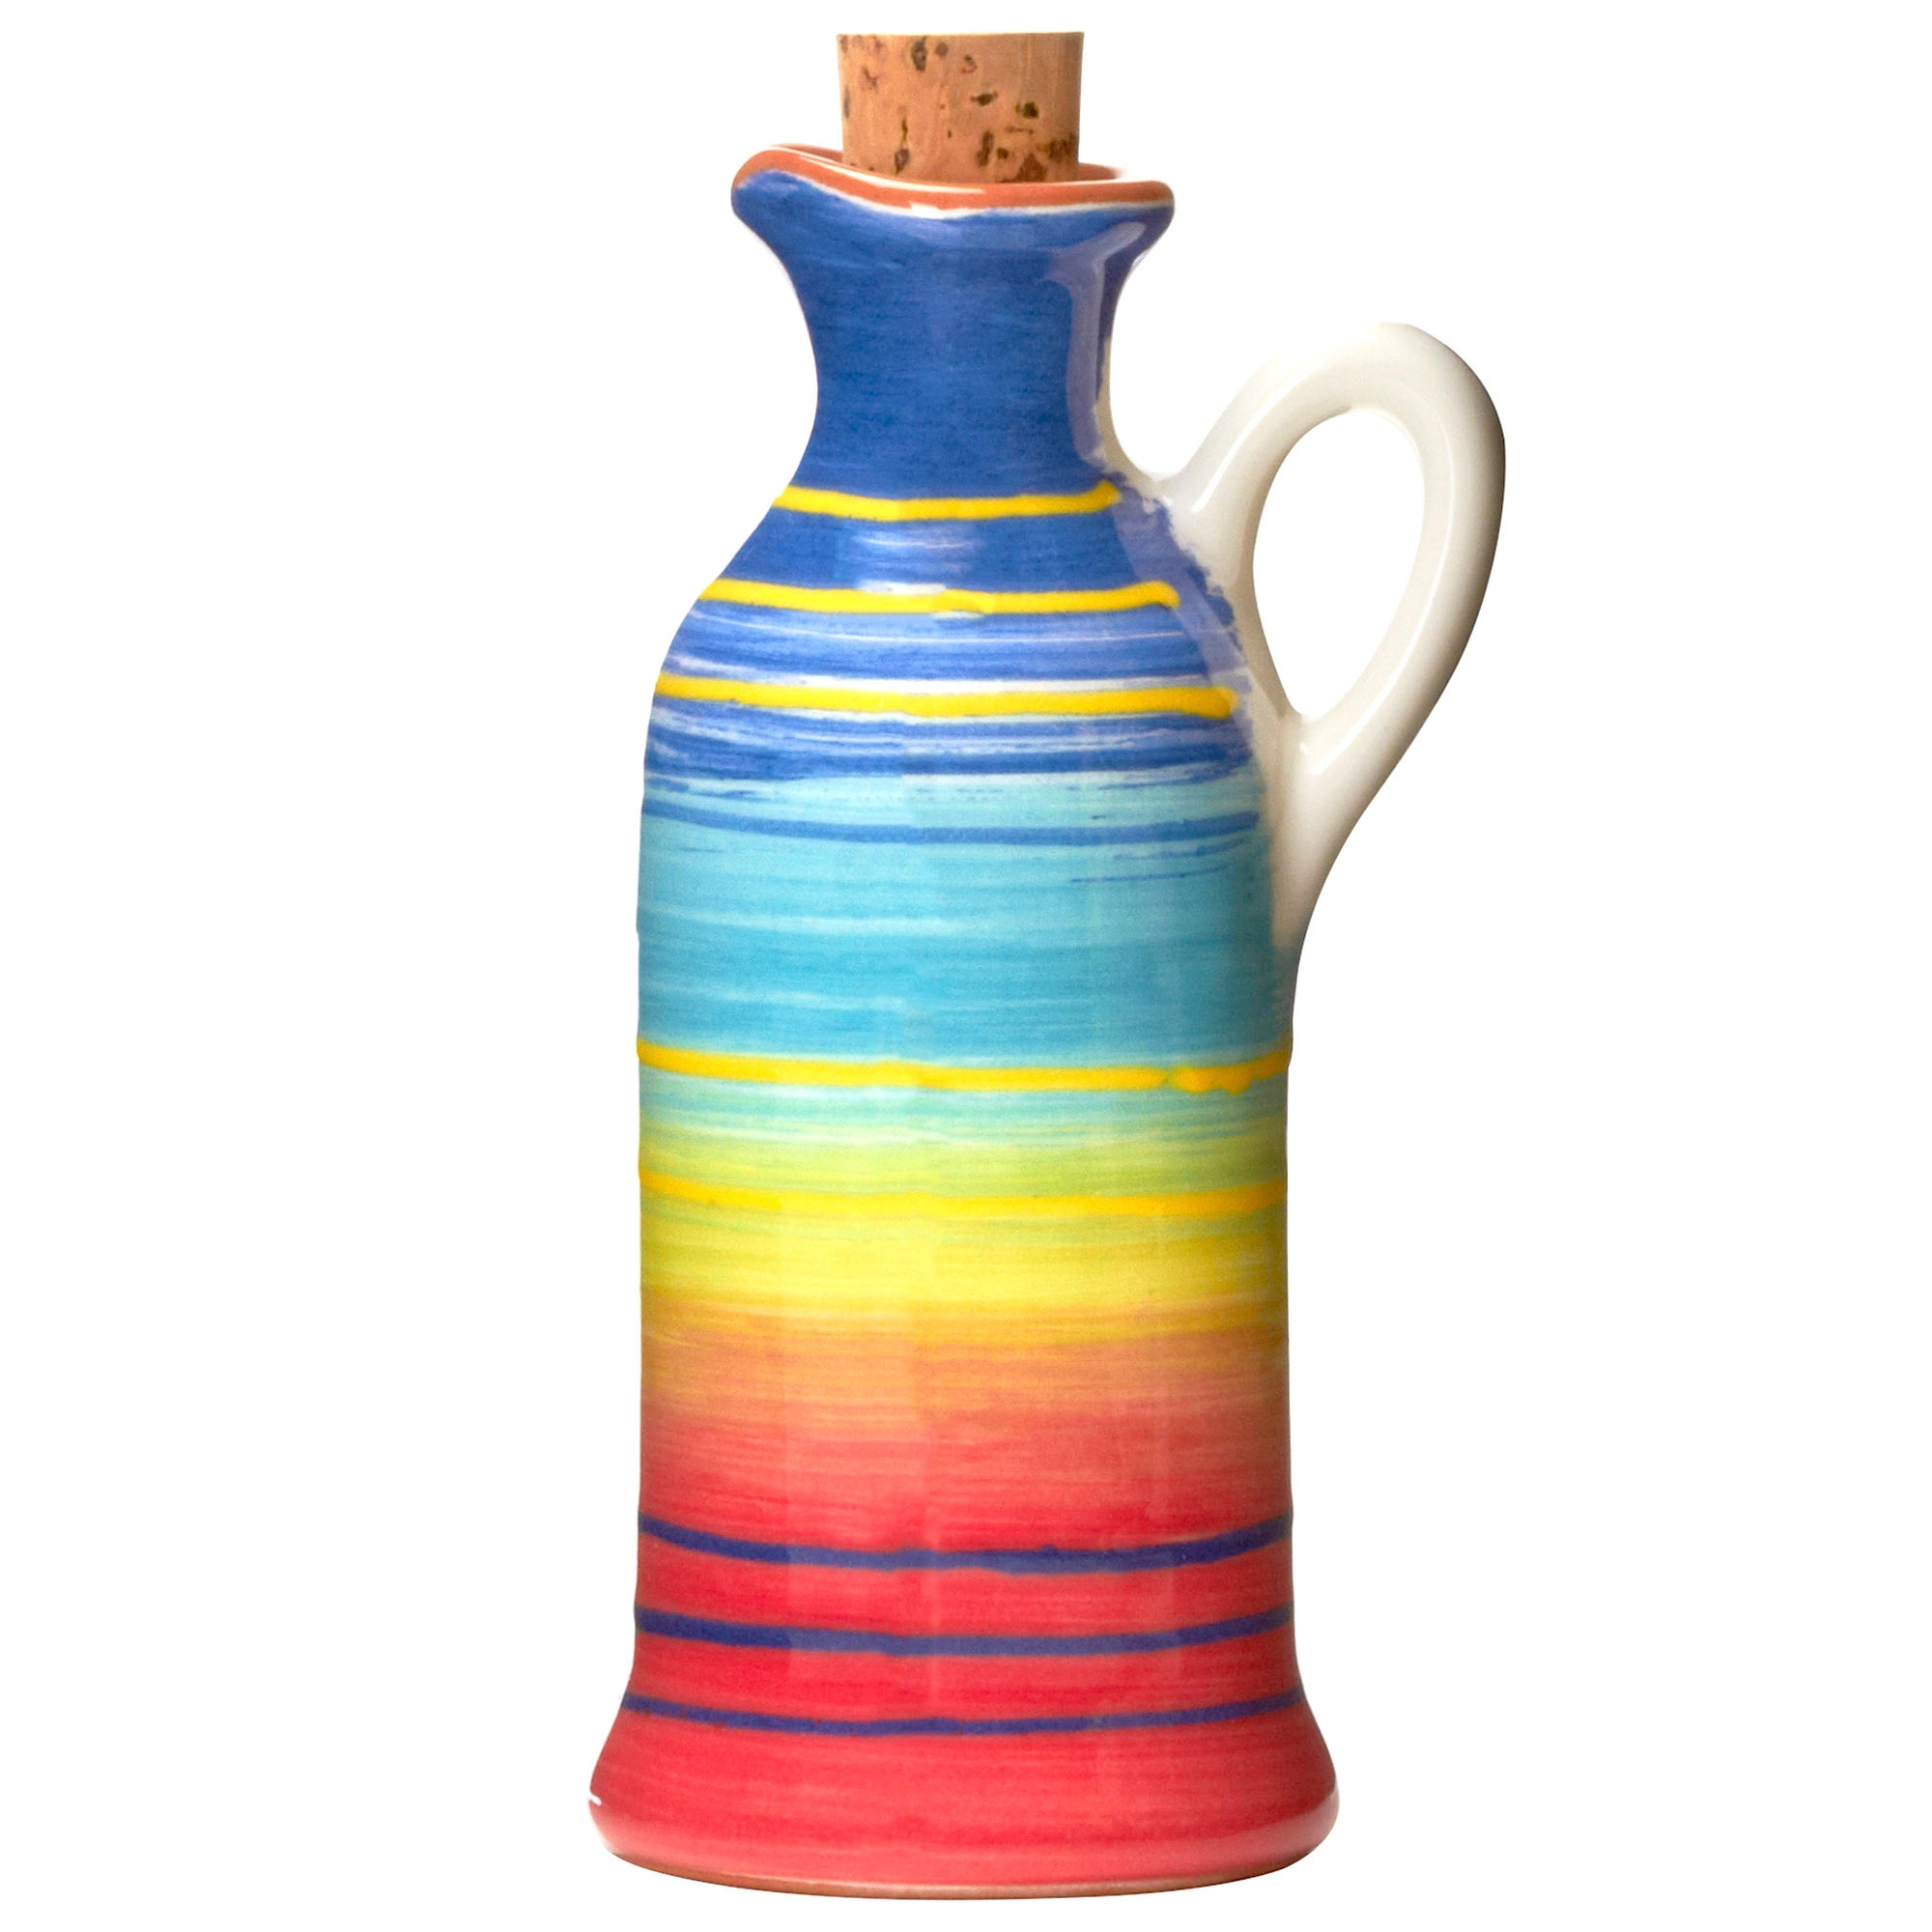 Mediterranean Rainbow Oil Bottle